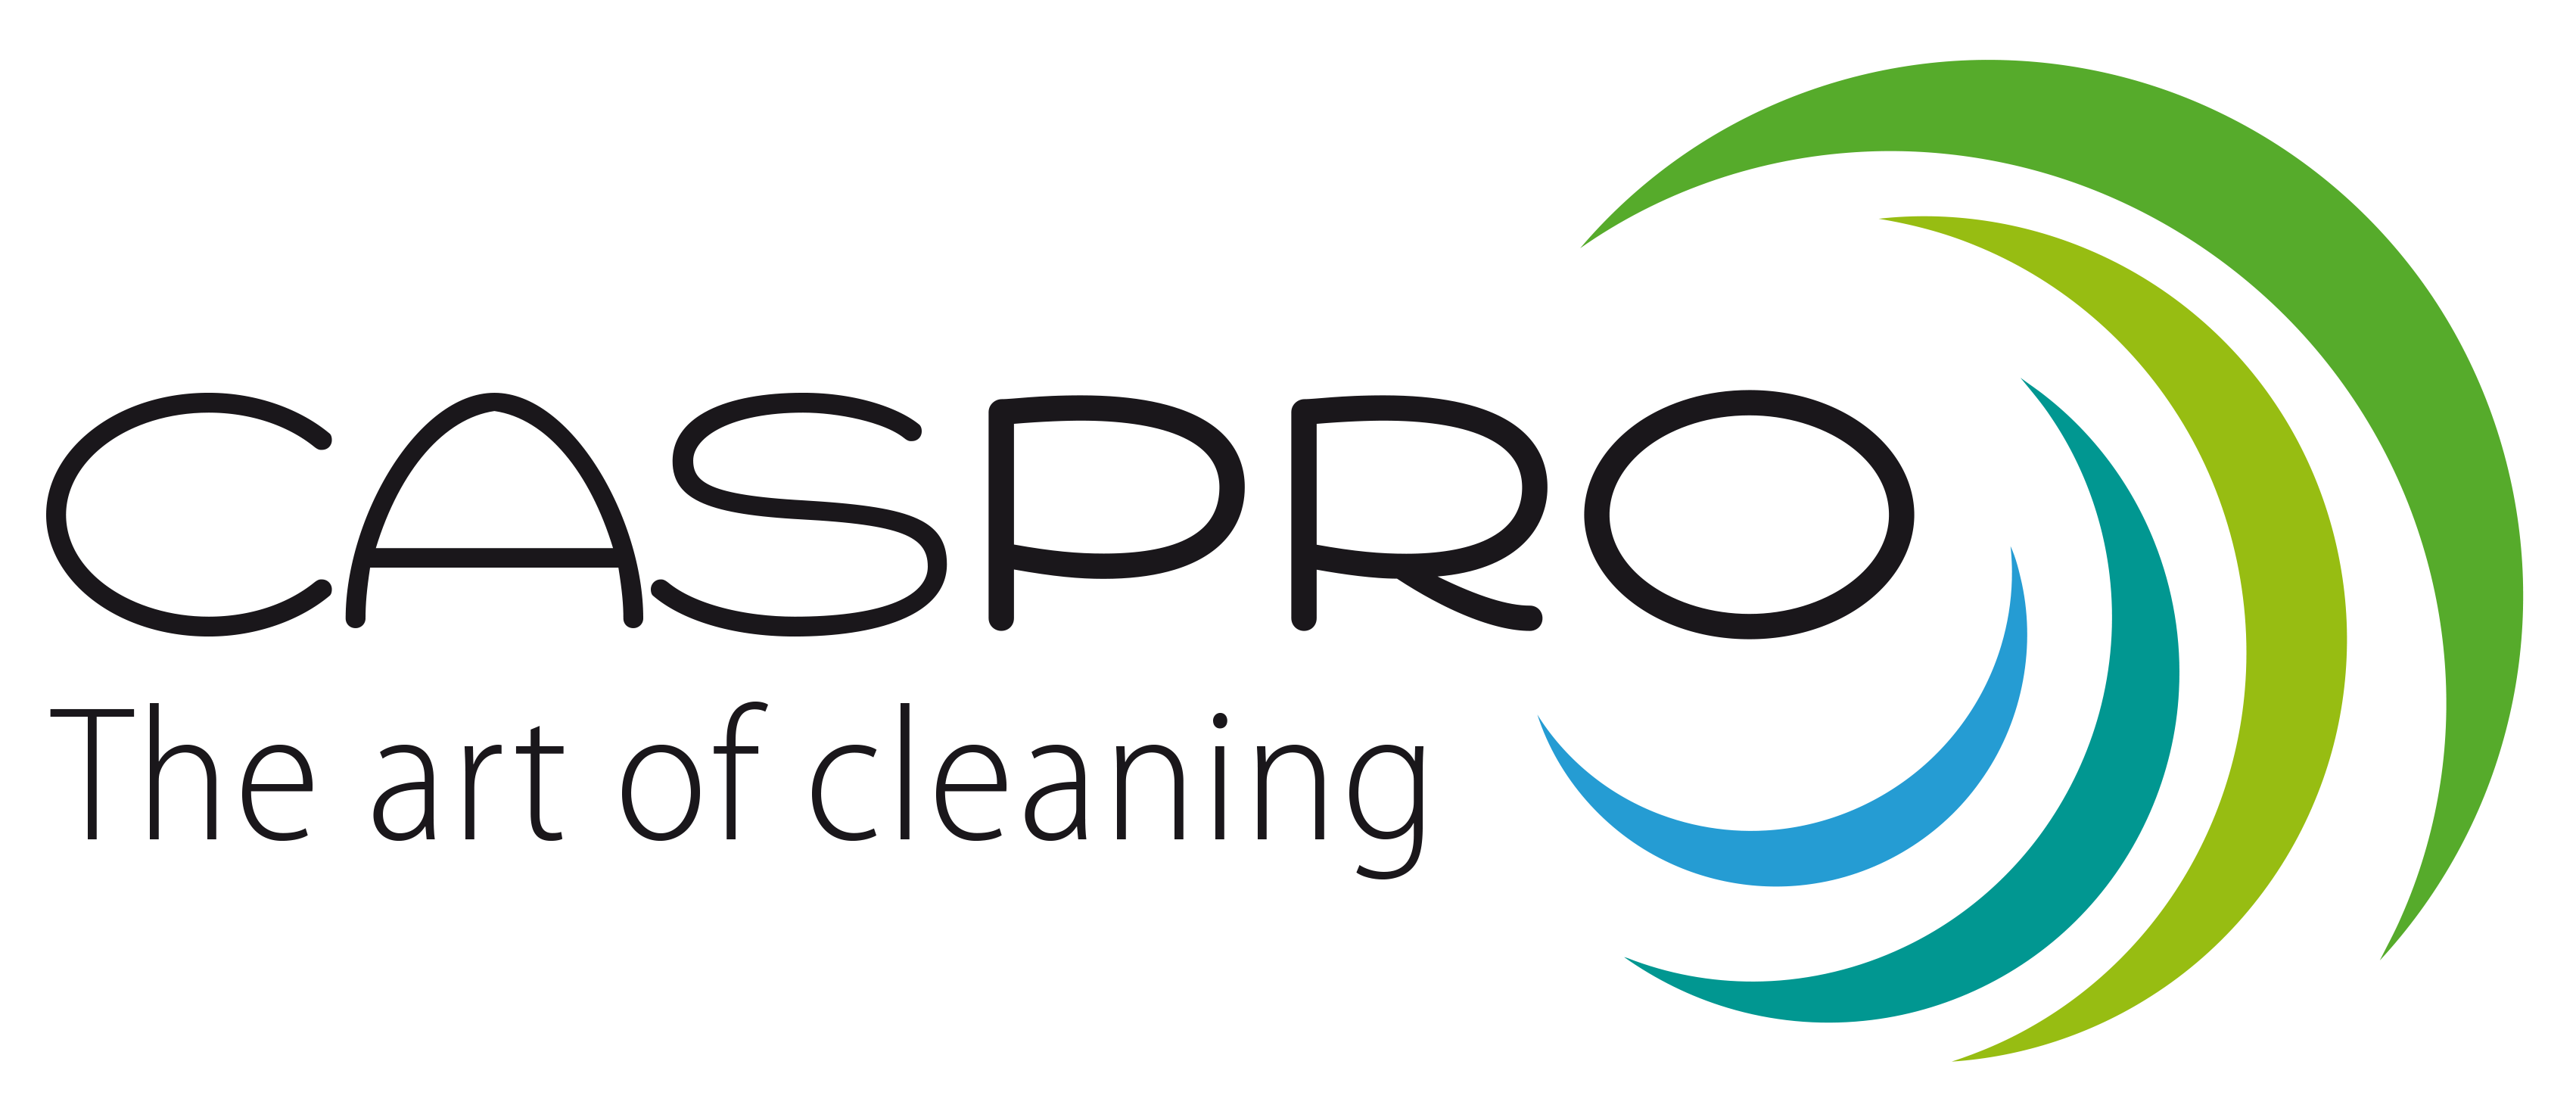 Caspro logo transparent